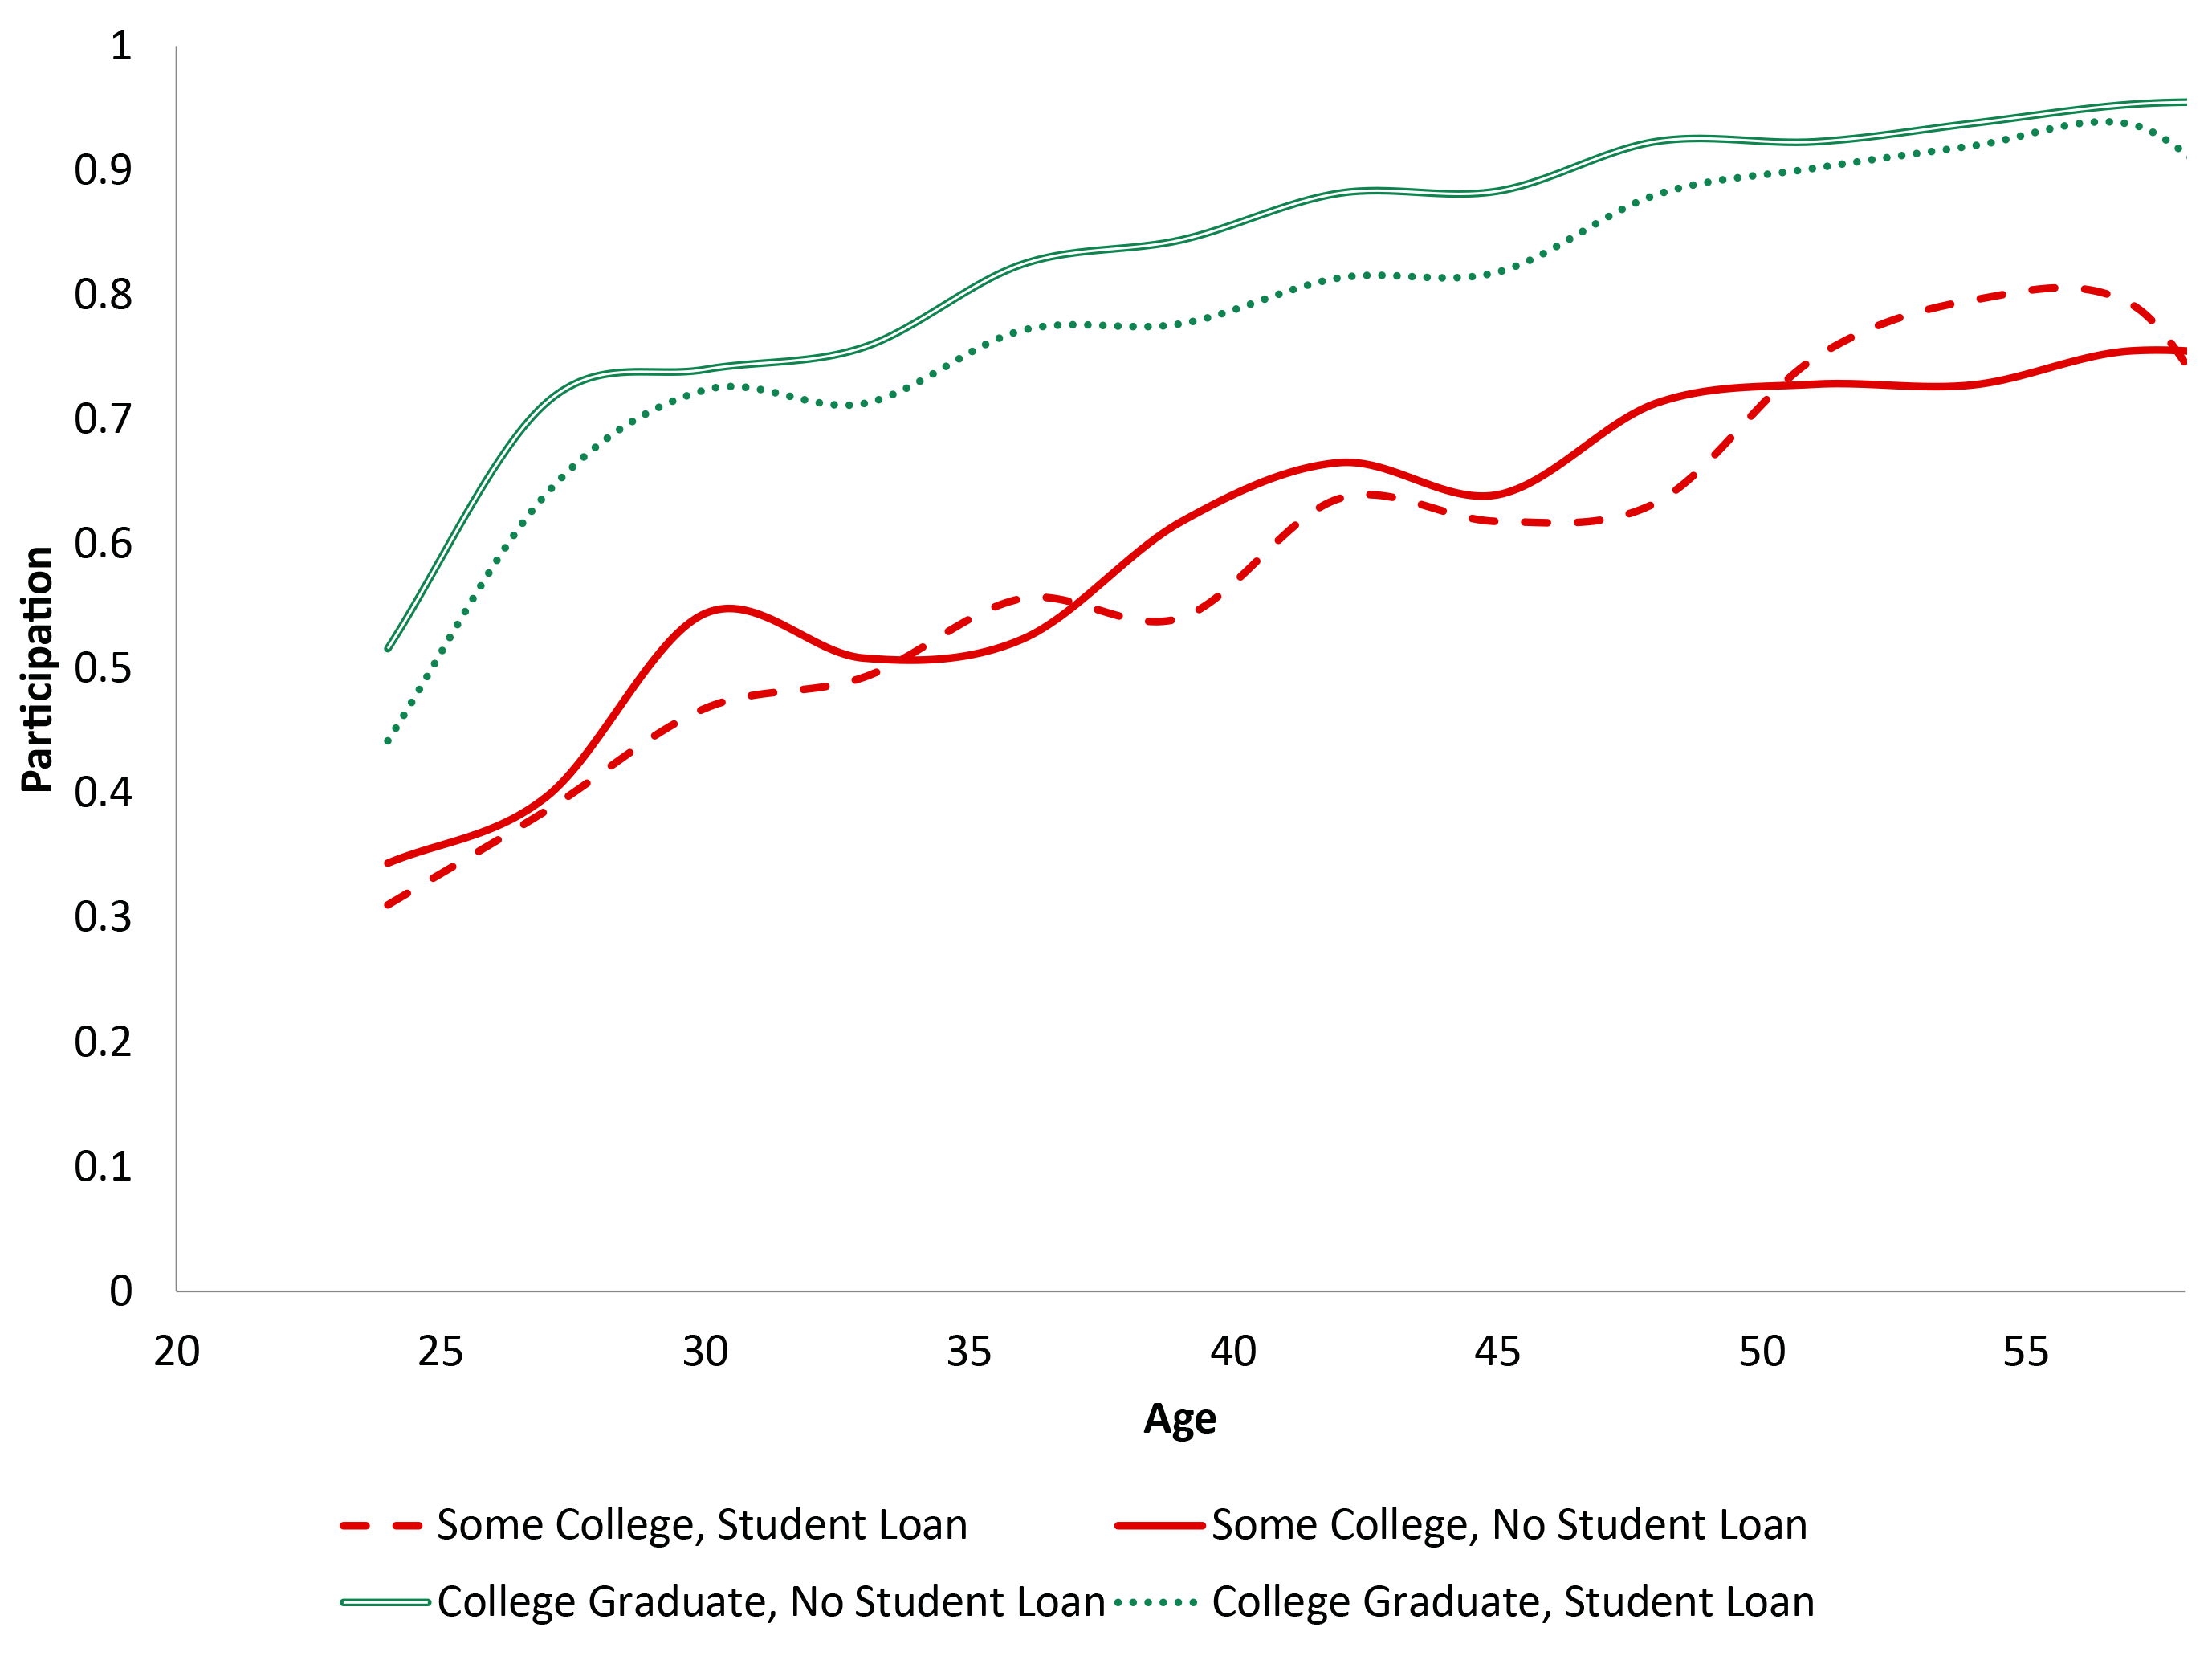 Figure 2: Estimated Participation Rate over the Life Cycle by Educational Attainment and Student Loan Status for 1973-1975 Birth Cohort (SCF). See accessible link for data description.